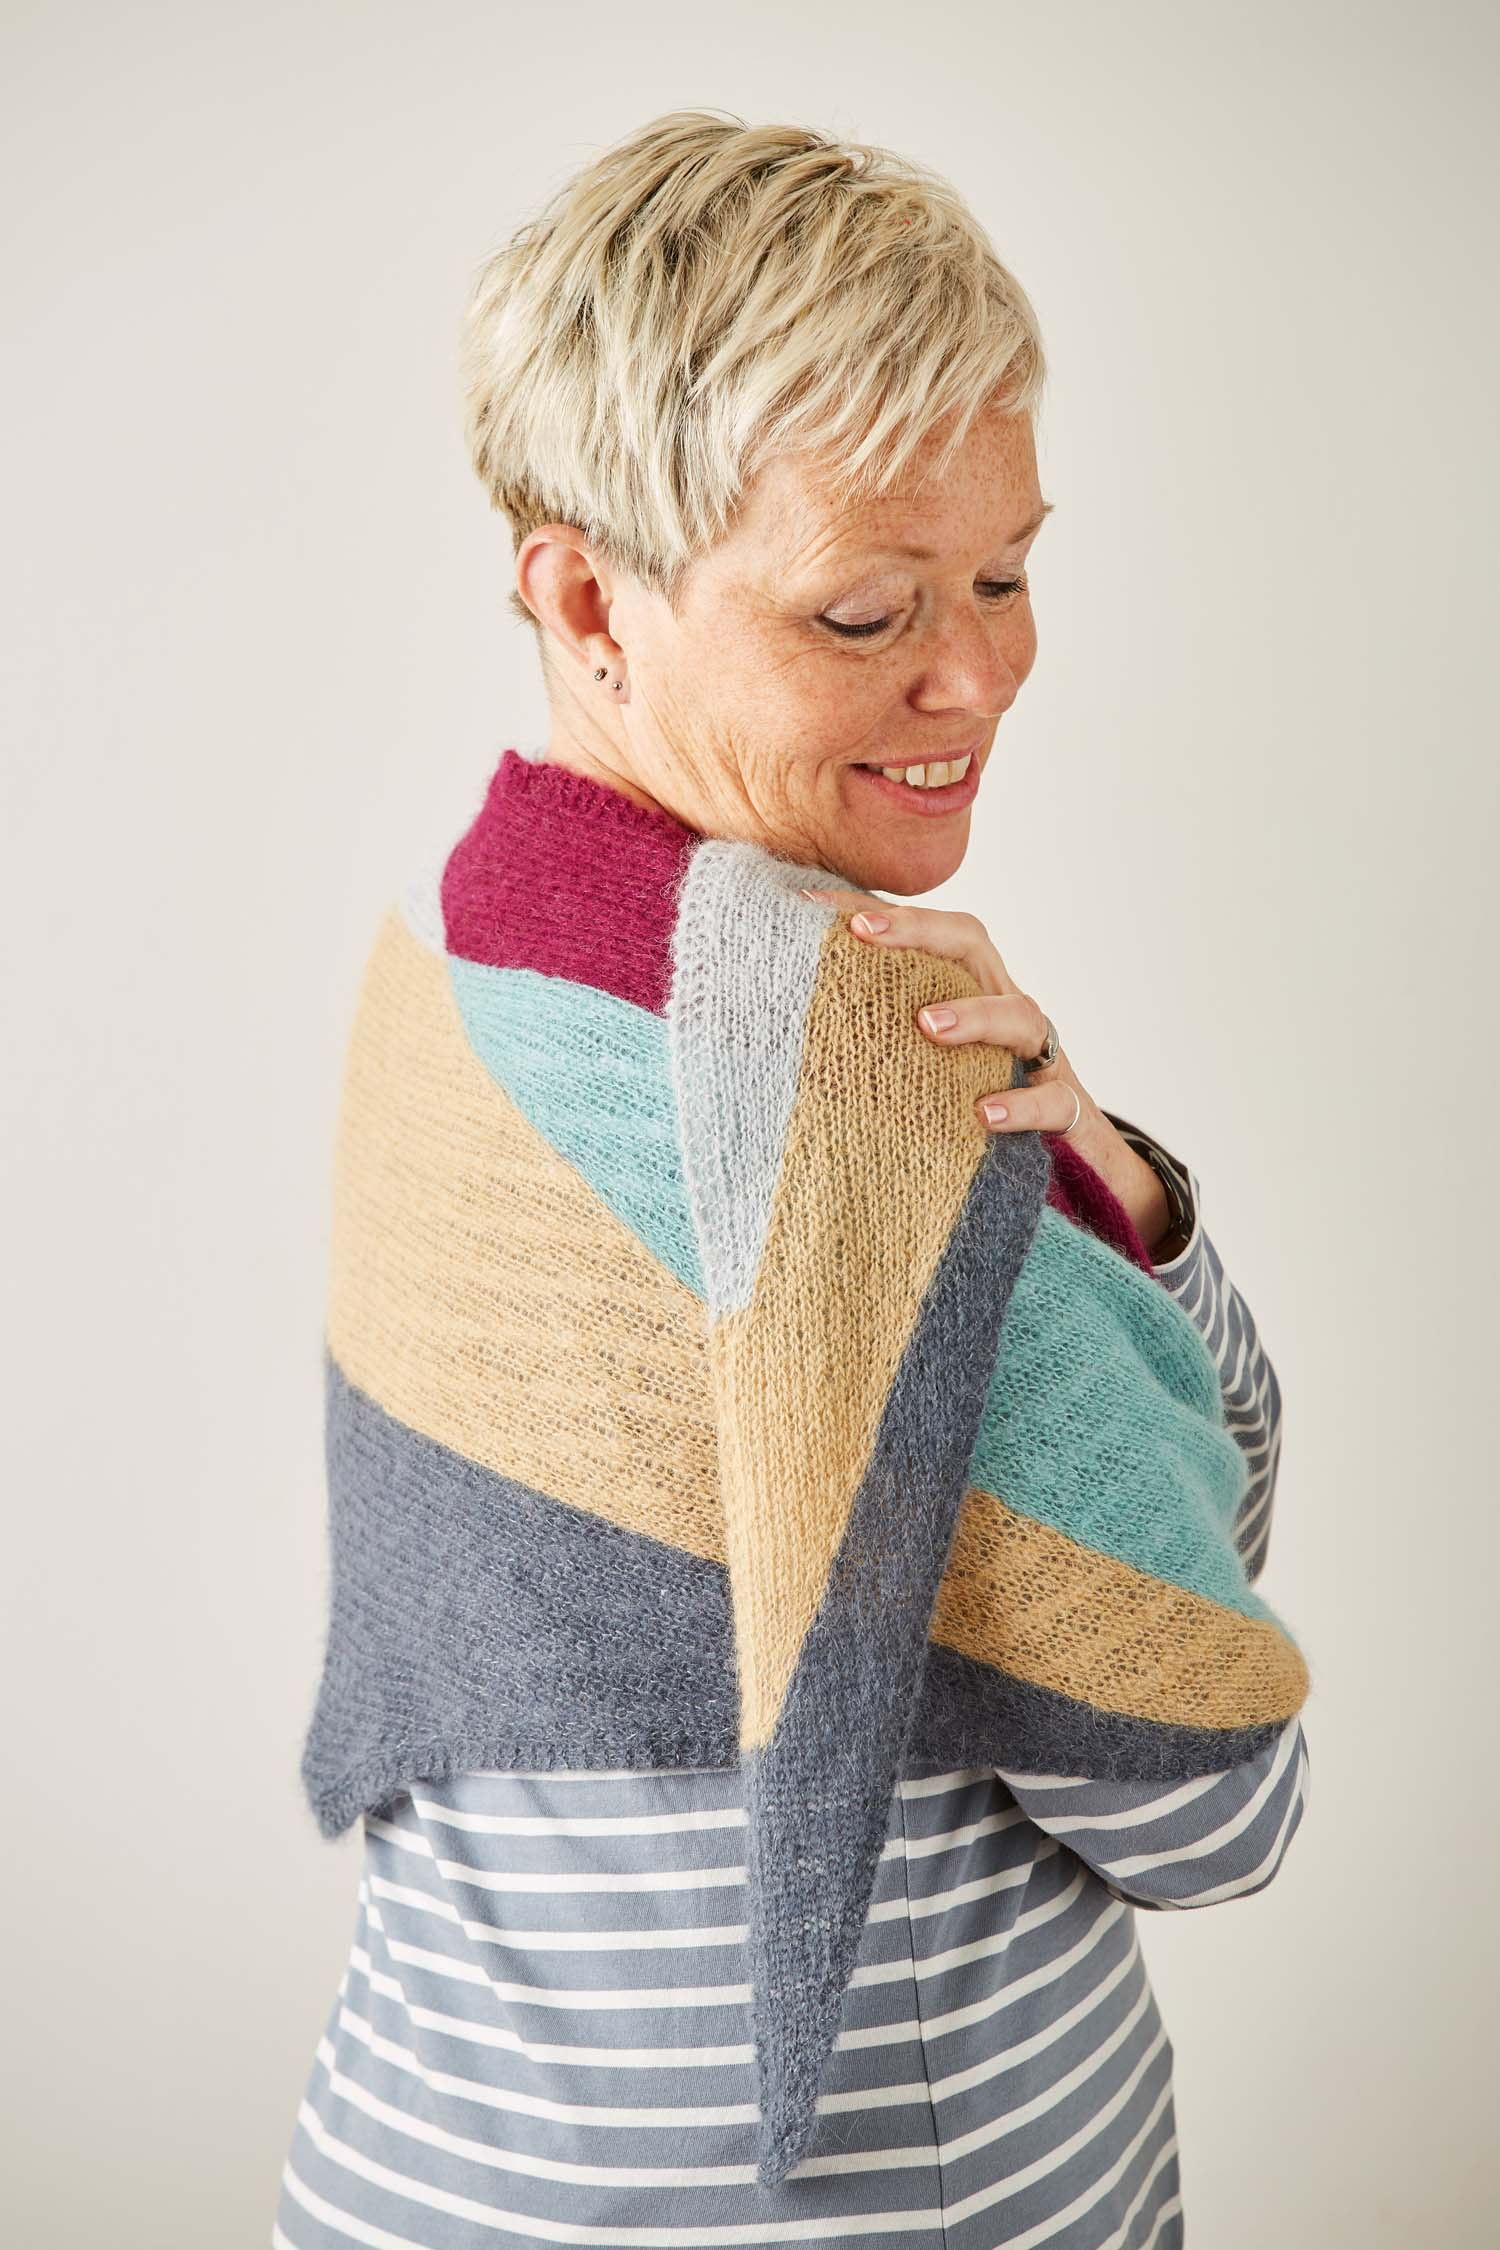 The clever way that the intarsia and shaping work together make this a simple project to work on, no matter where you are.